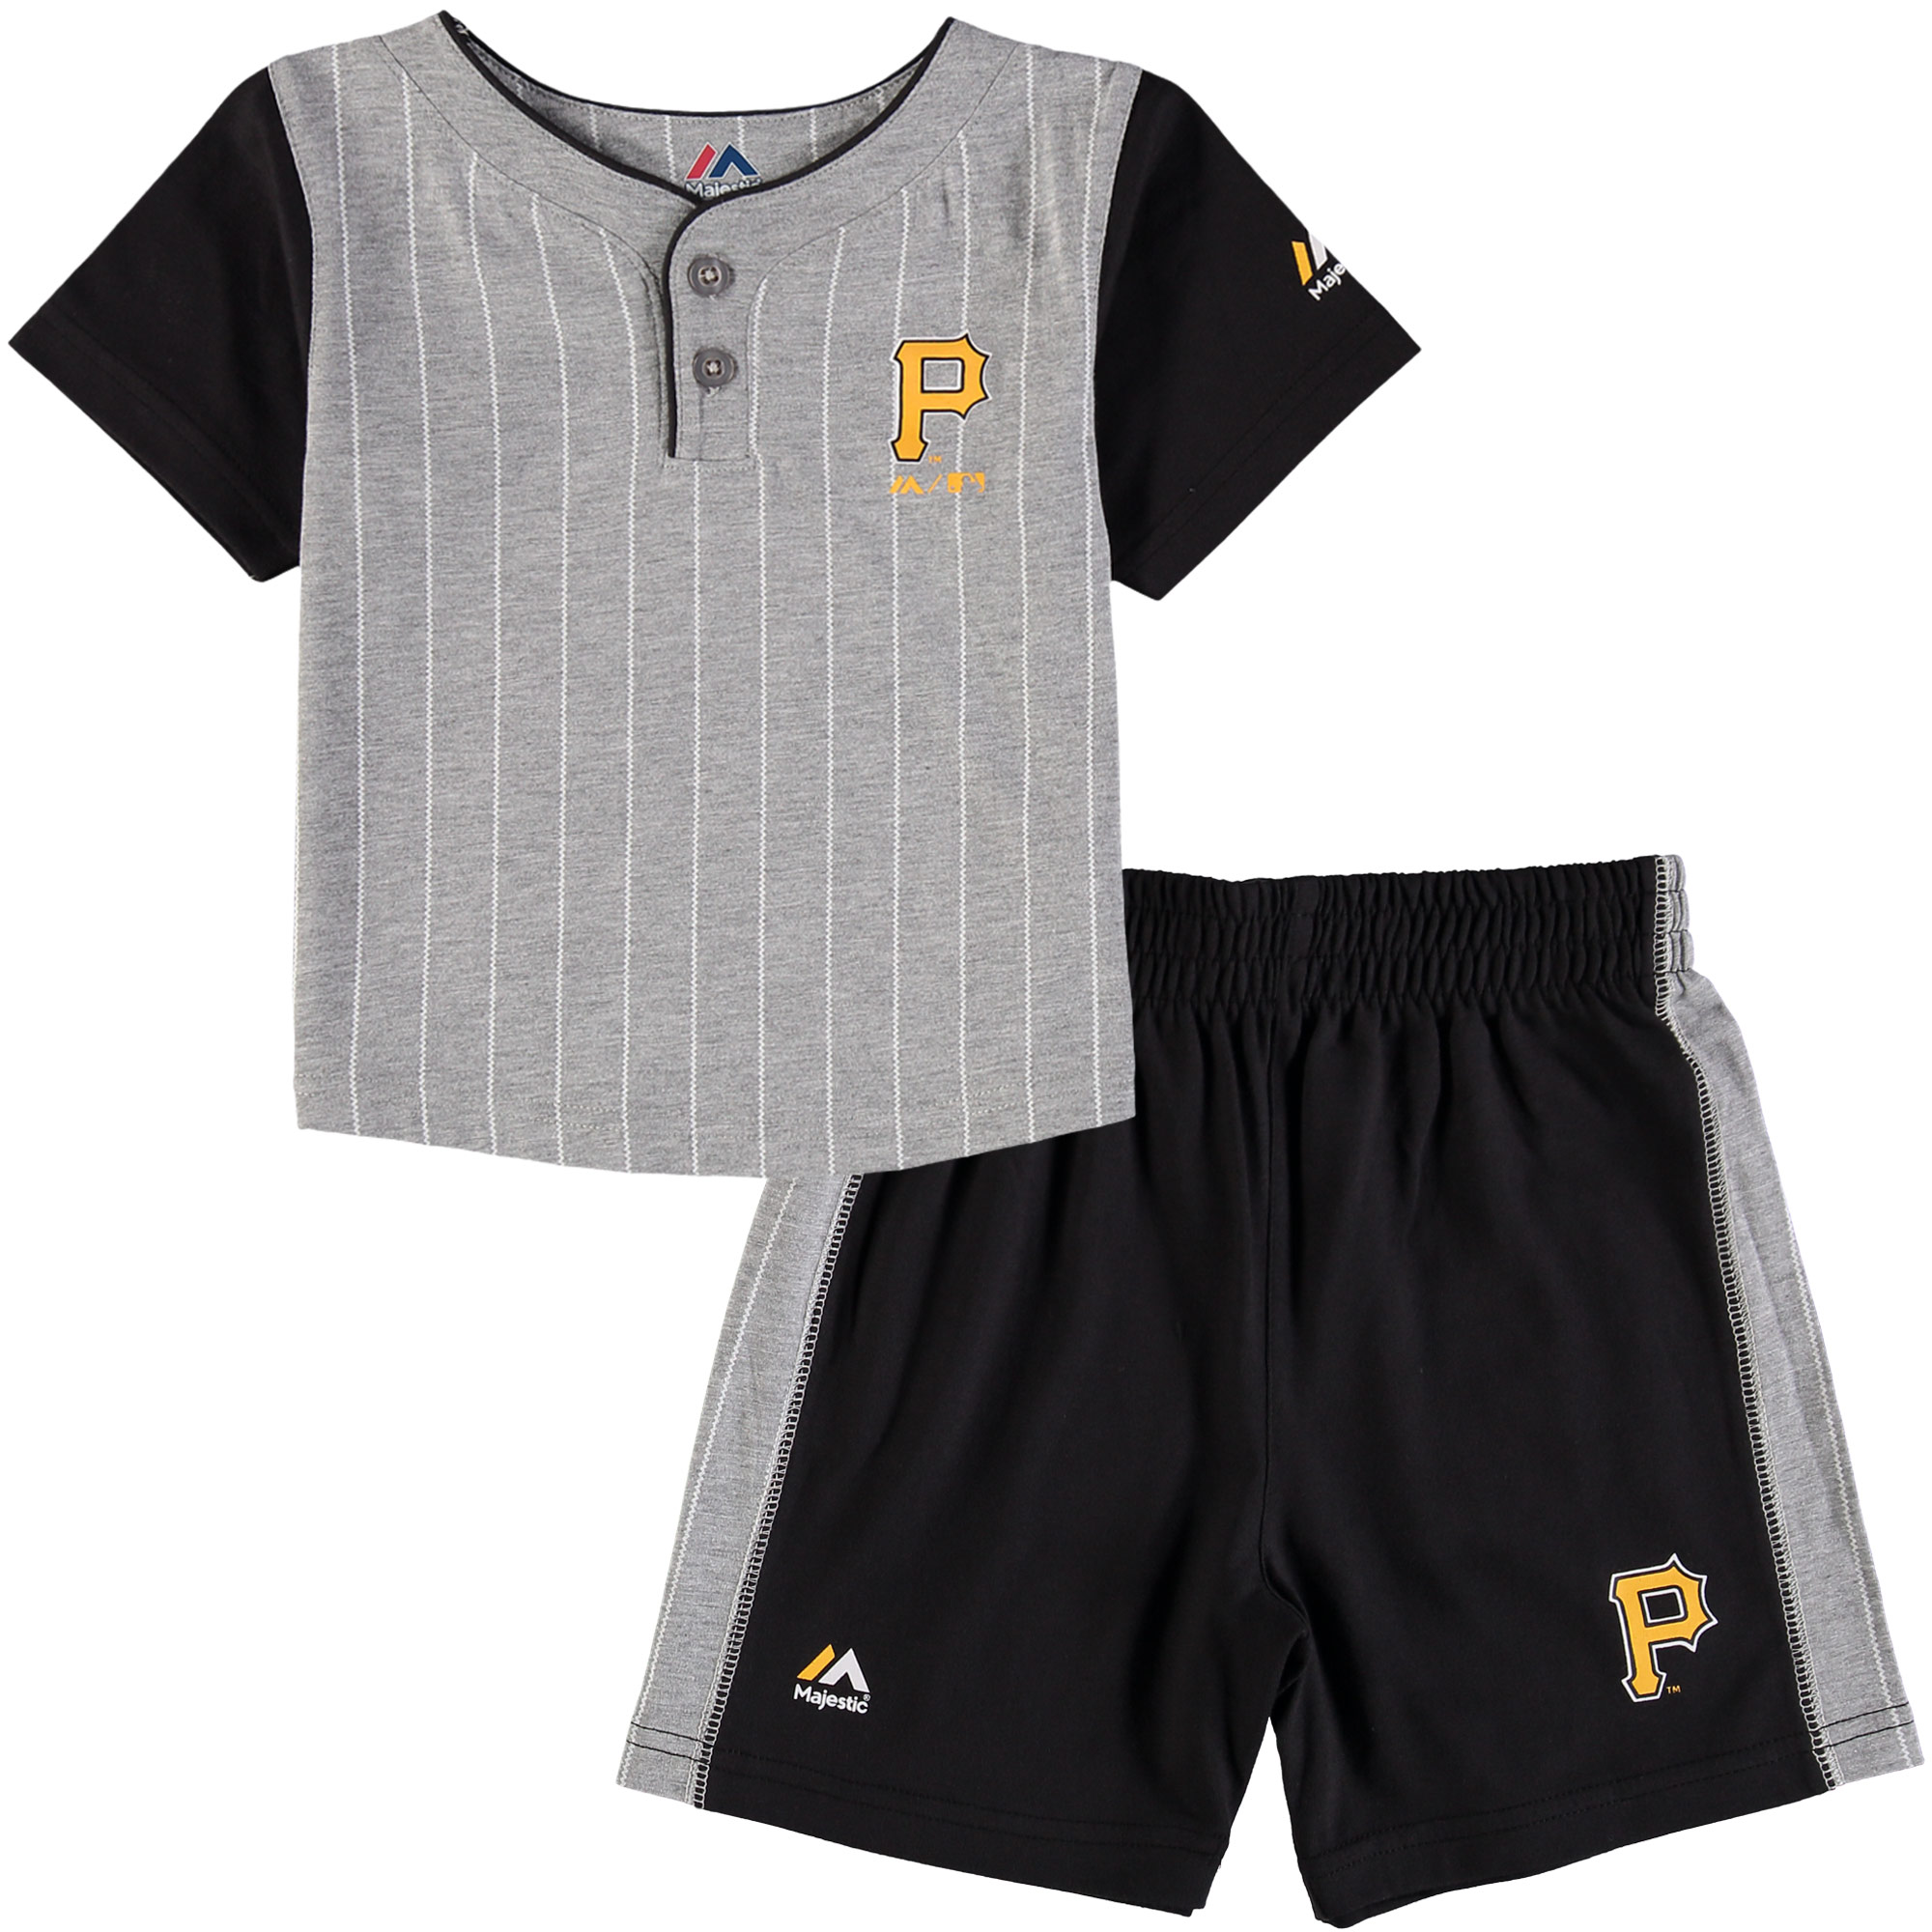 Pittsburgh Pirates Majestic Toddler Batter Up T-Shirt & Shorts Set - Gray/Black